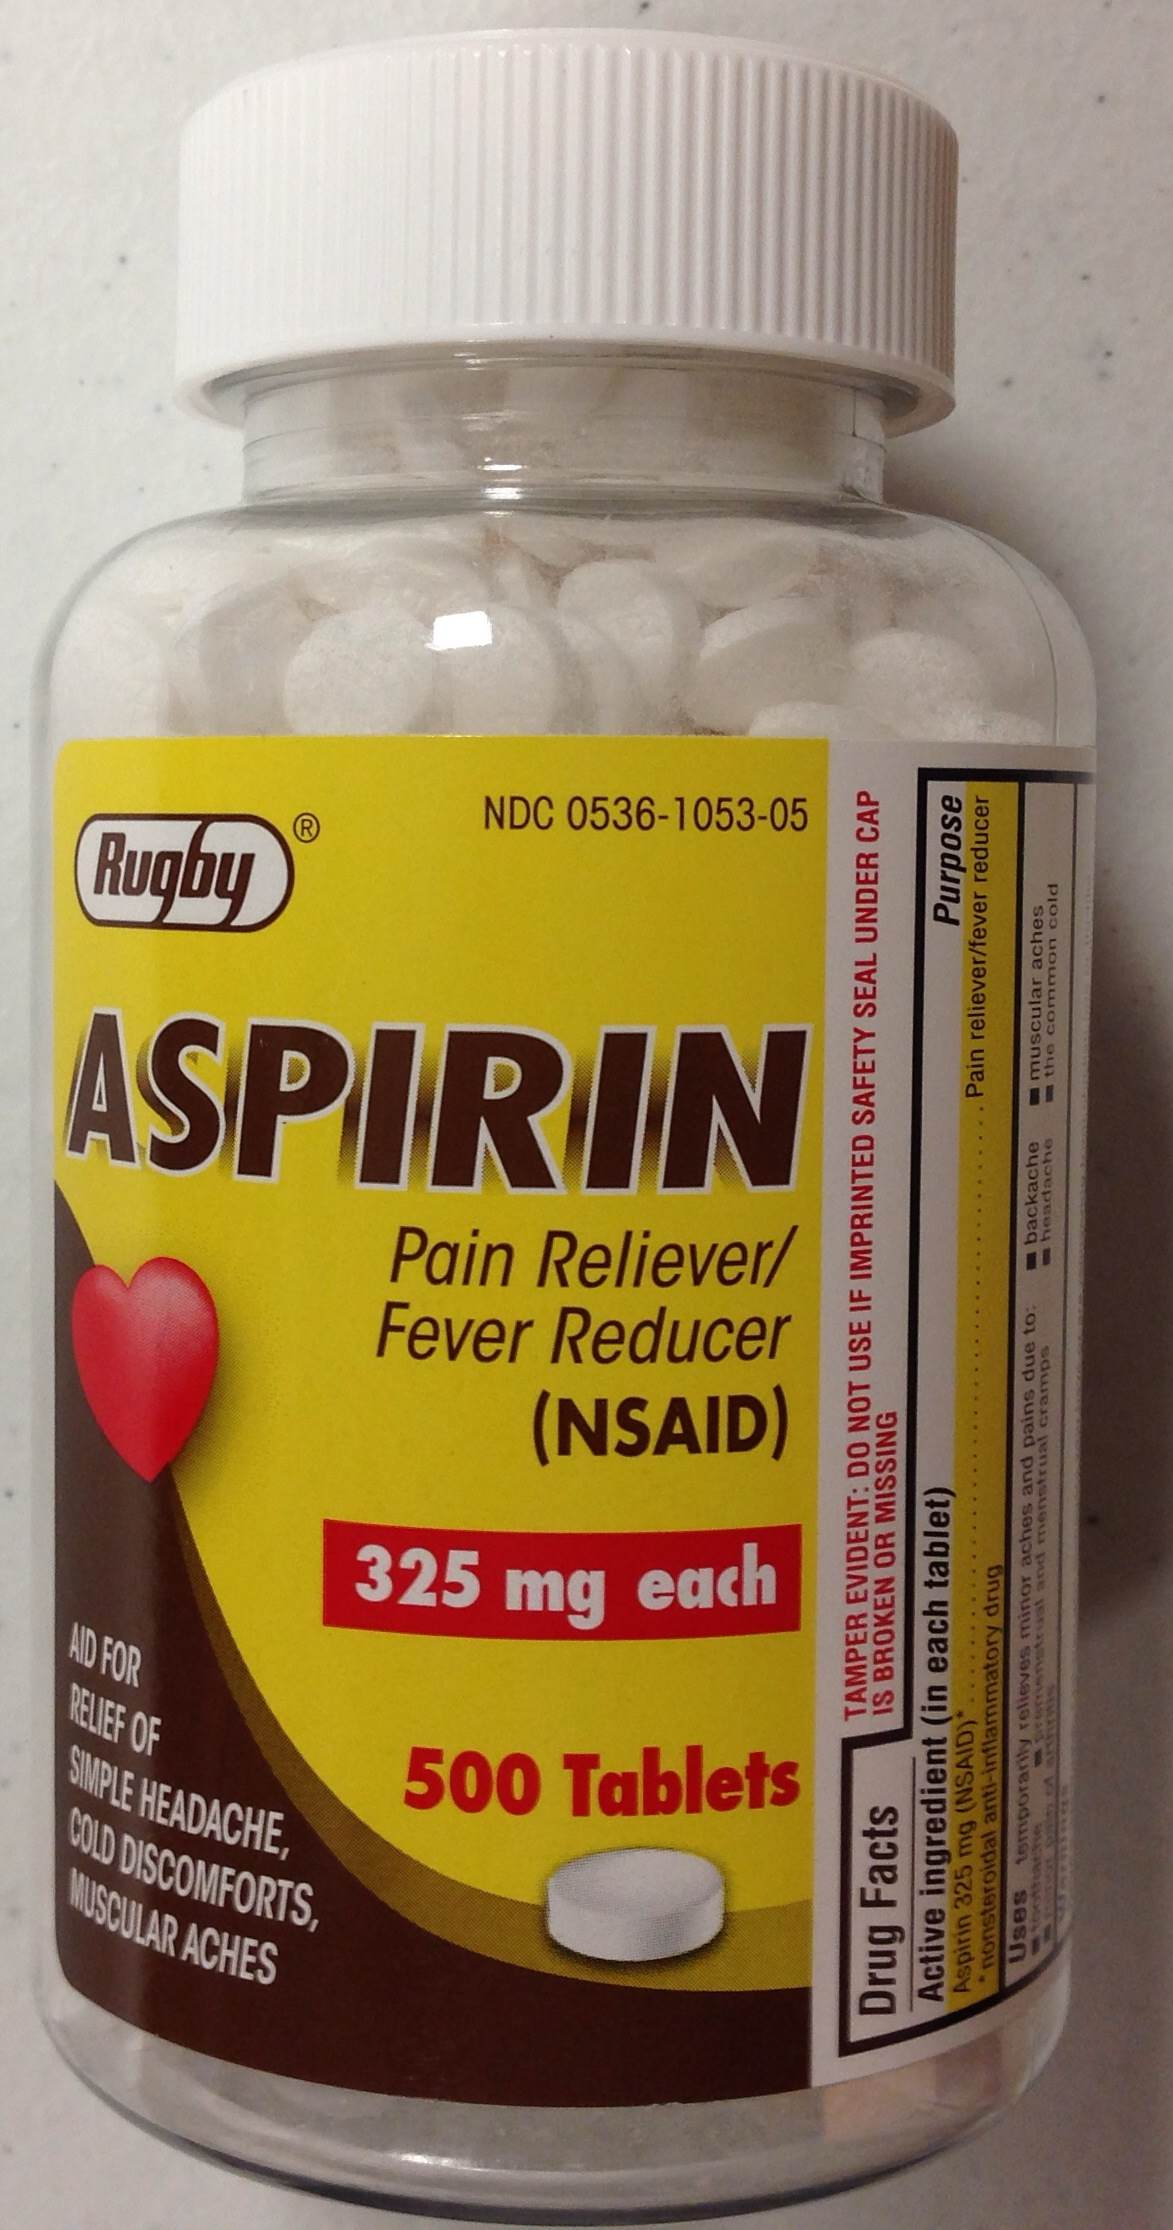 Aspirin Uncoated 325 mg (Compare to Bayer) - 500 Tablets (Rugby)